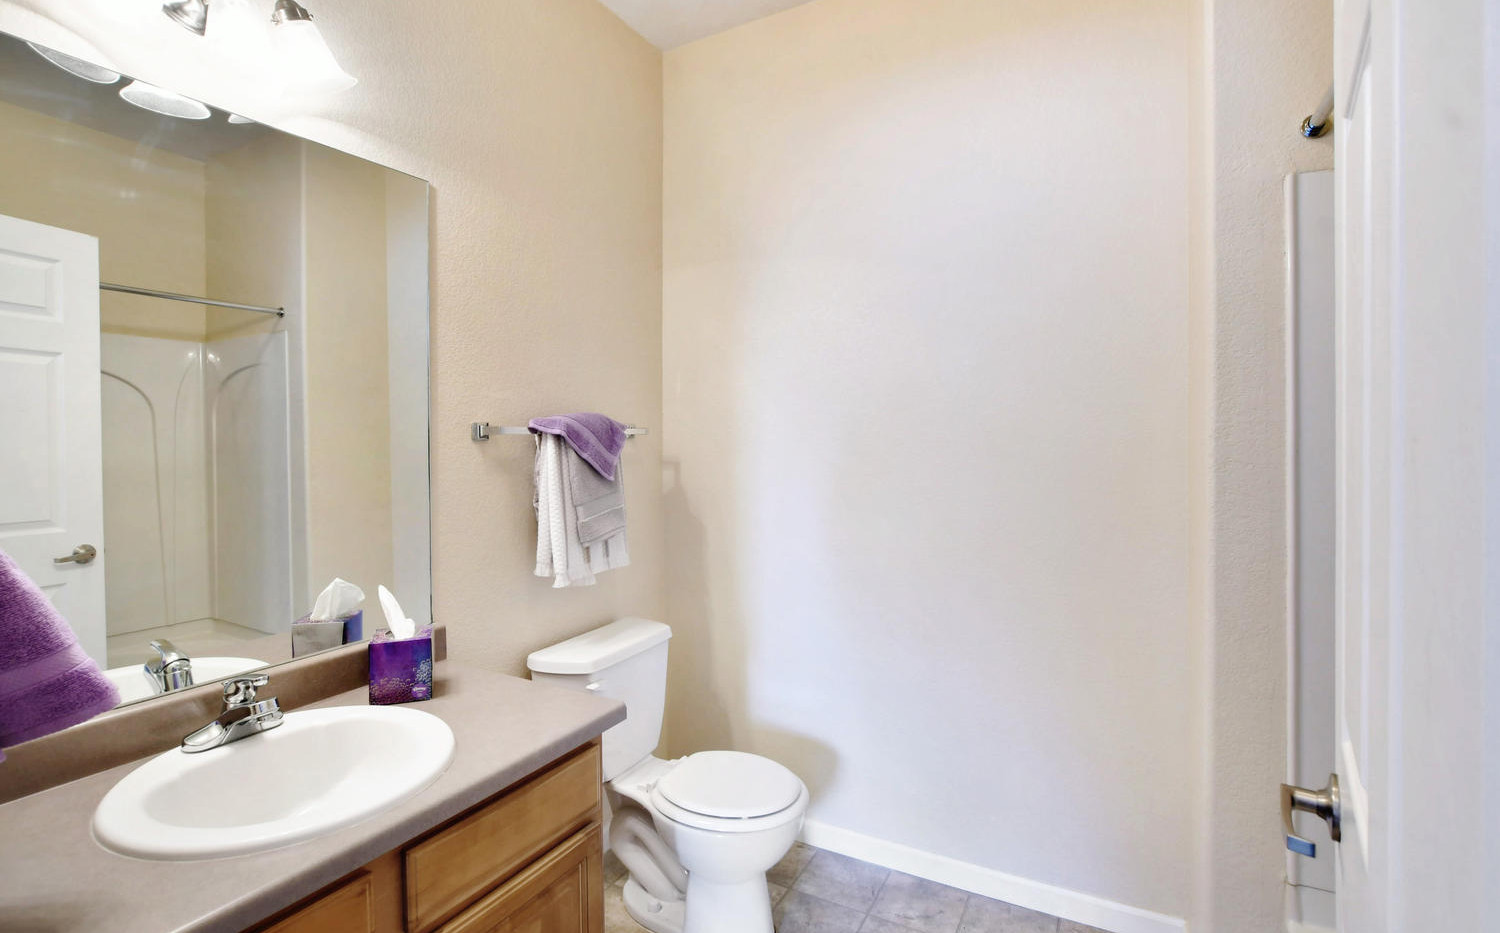 Two bedroom bathroom